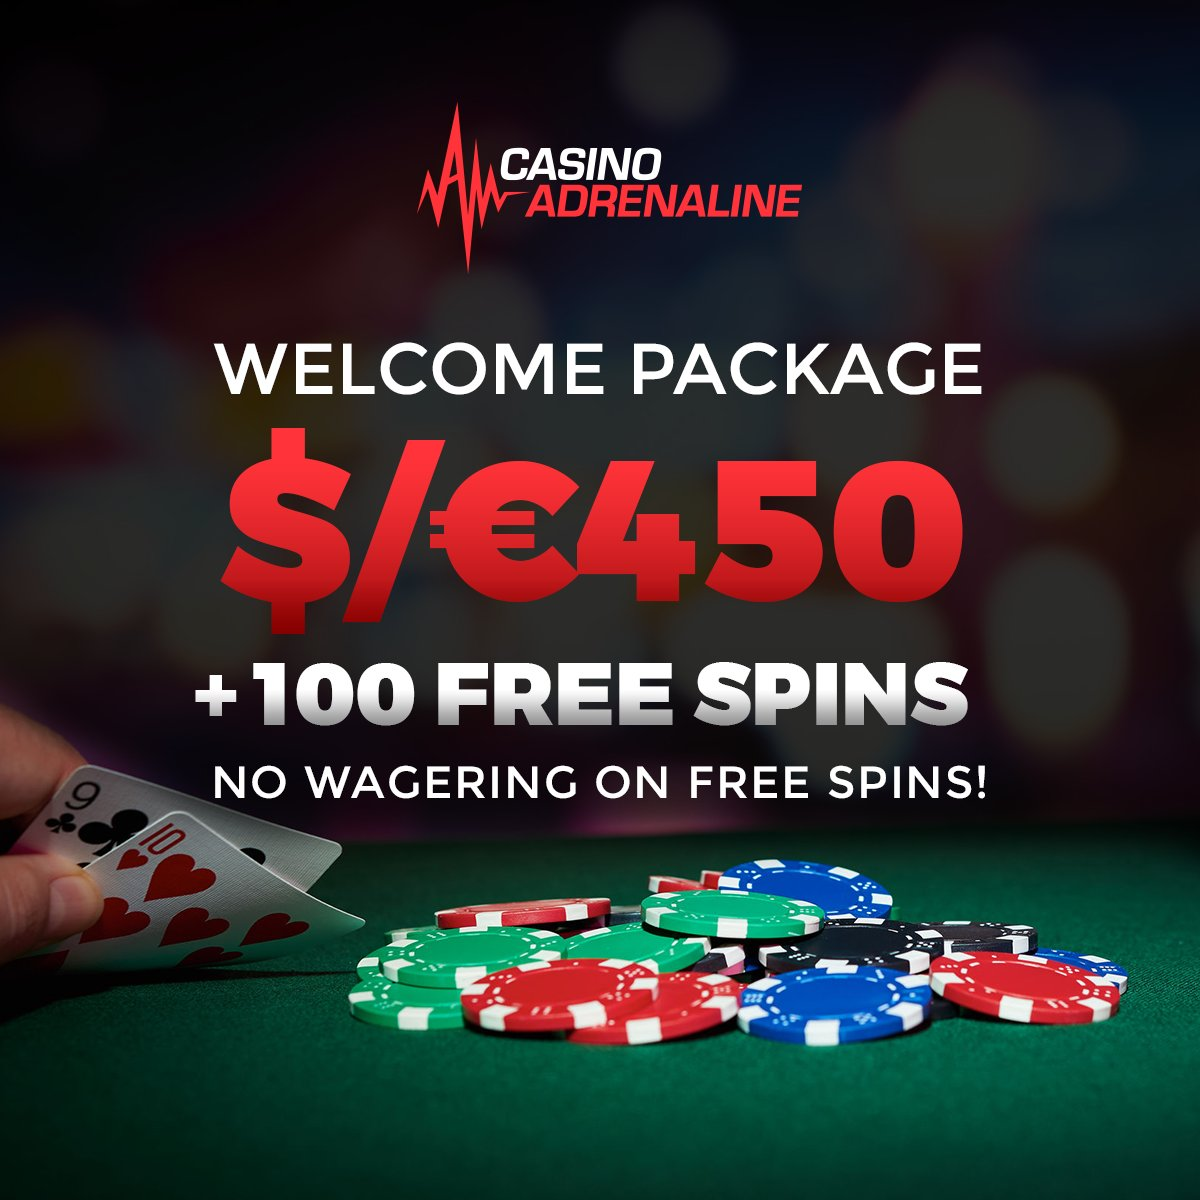 test Twitter Media - Are you a NEW PLAYER? Check out Casino adrenaline WELCOME PACKAGE! https://t.co/VJrxvlNIHG